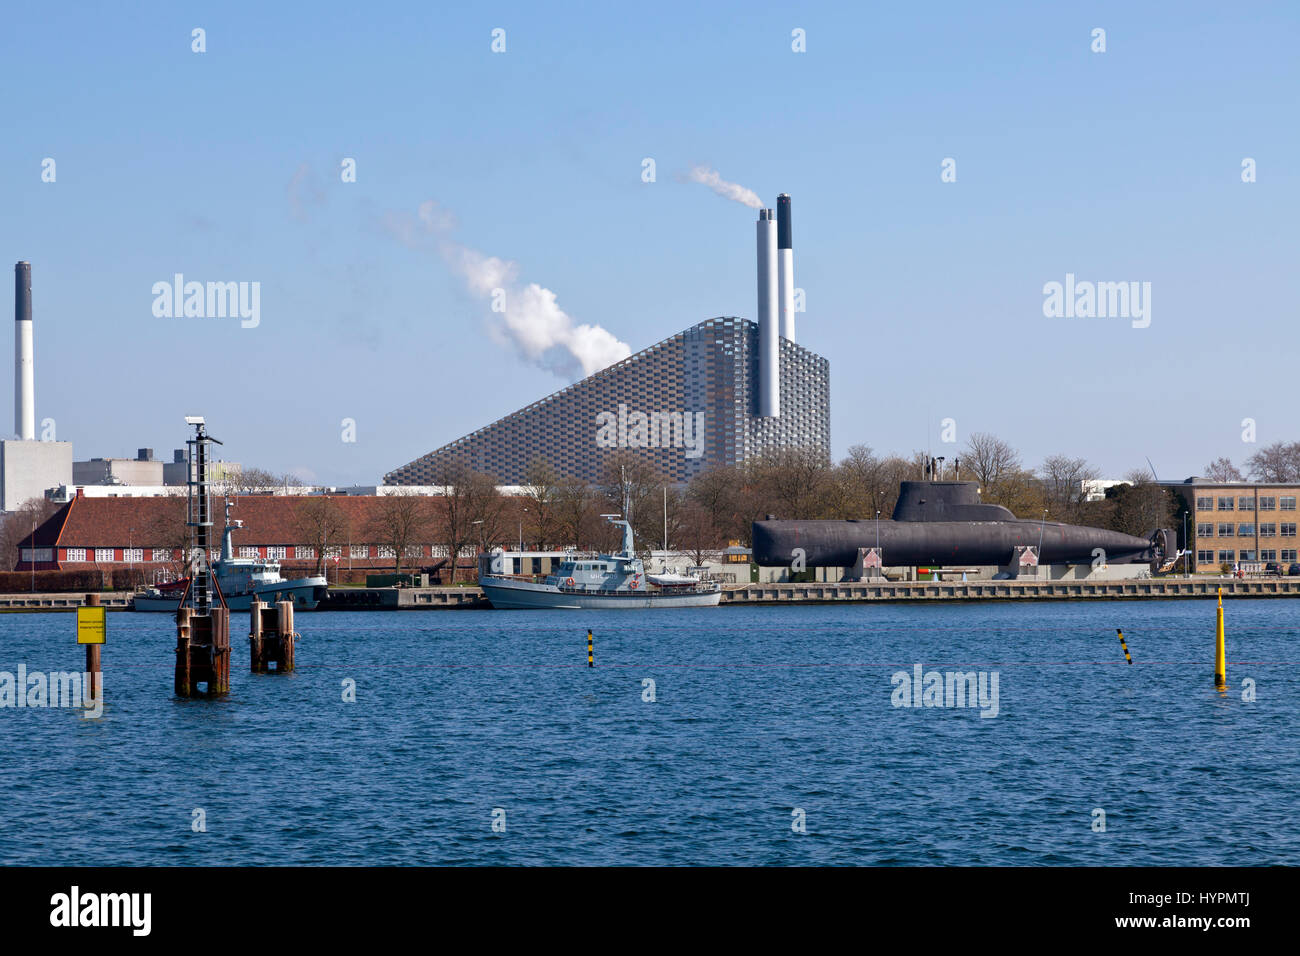 The Holmen old warship exbibition and the Amager Slope waste-to-energy power plant at Amager Ressource Center, Amagerværket, - Stock Image